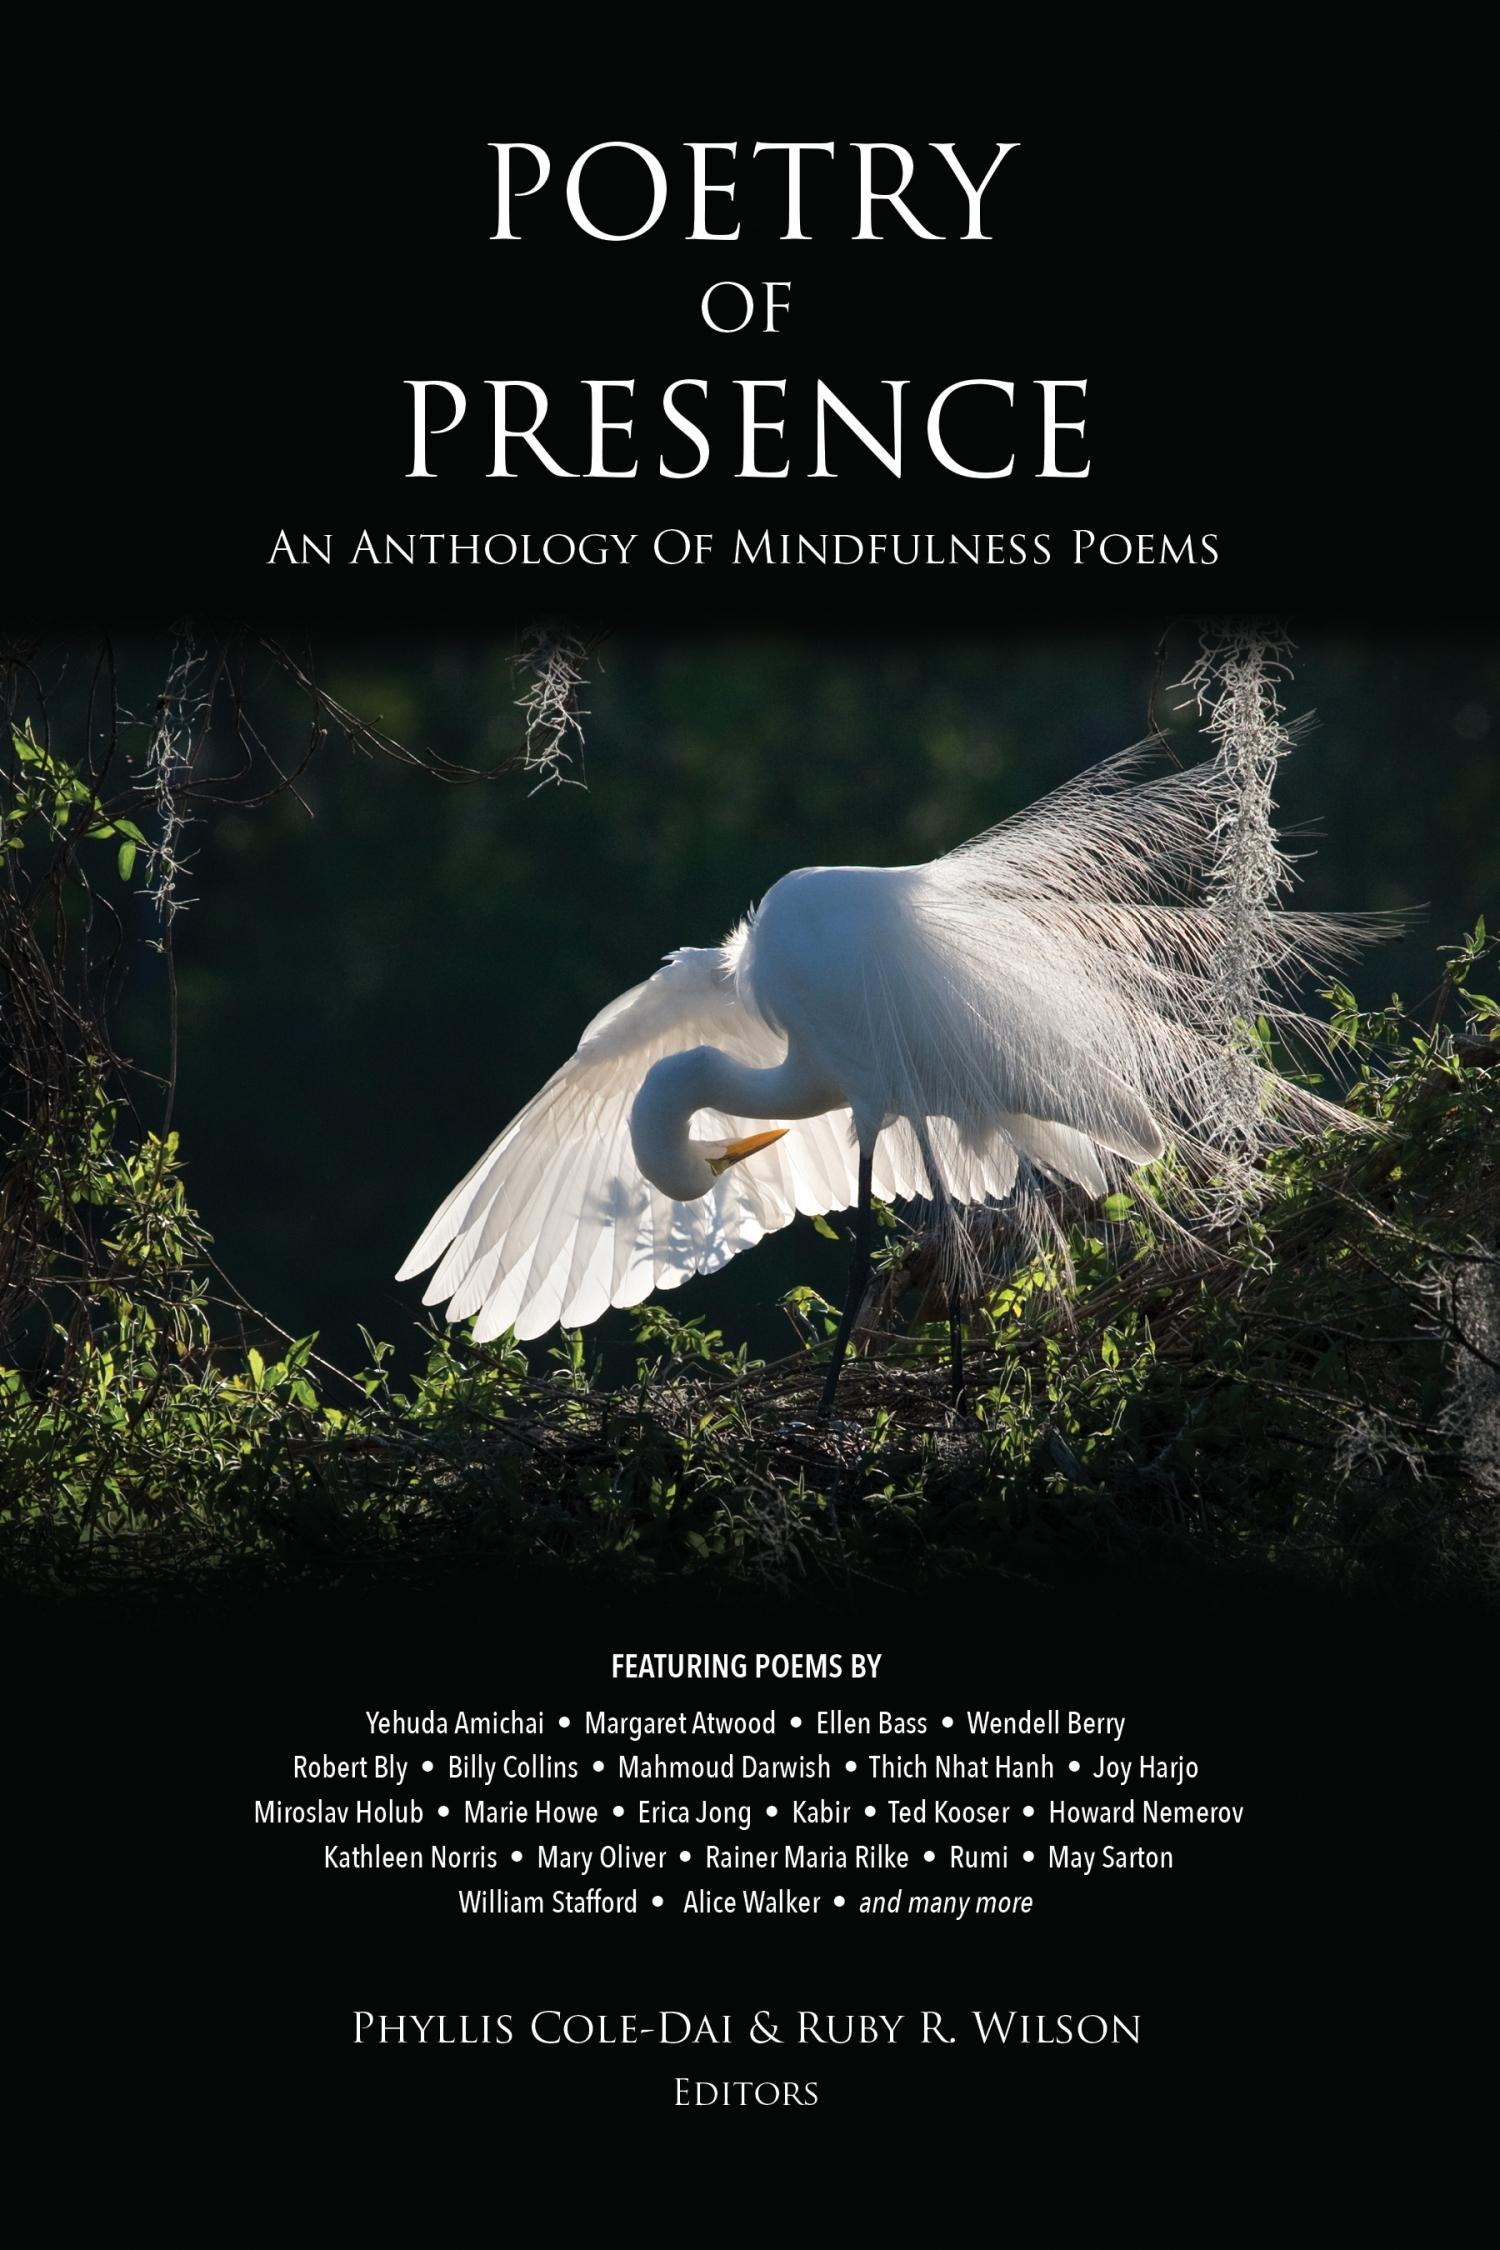 Poetry Book Cover History ~ Poetry of presence foreword indies finalist